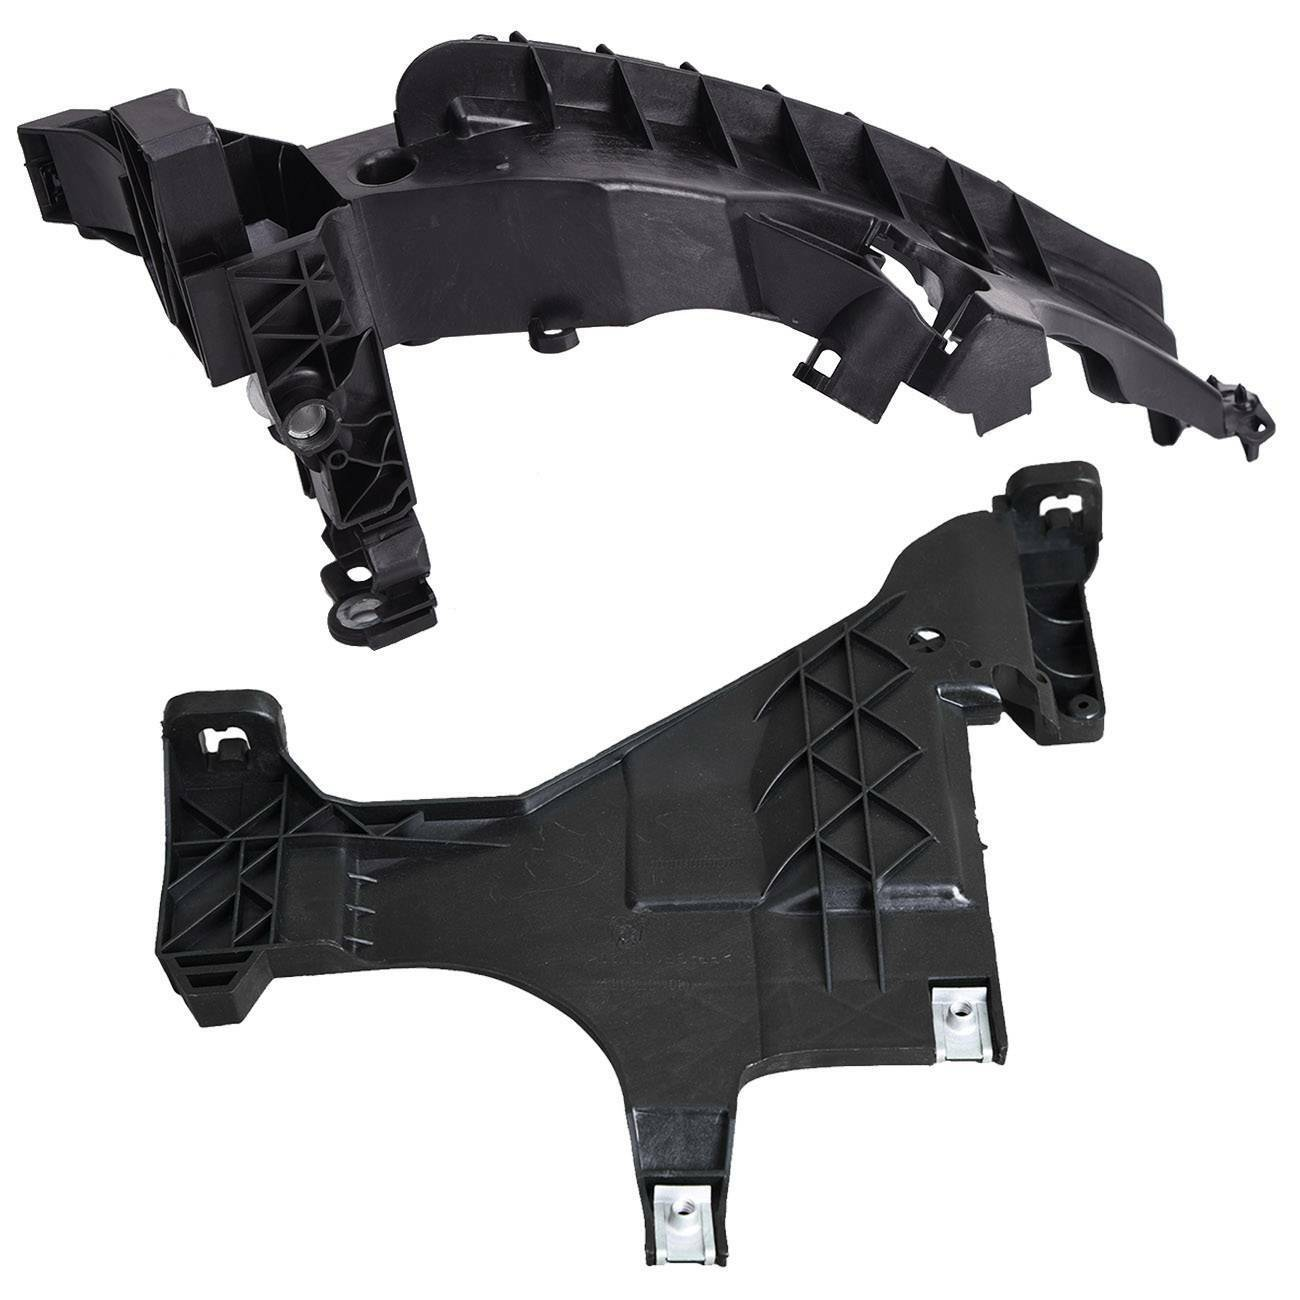 Trade Vehicle Parts AD1504 Headlight Support Mount Lower Bracket Driver Side Compatible With A4 2008-2012